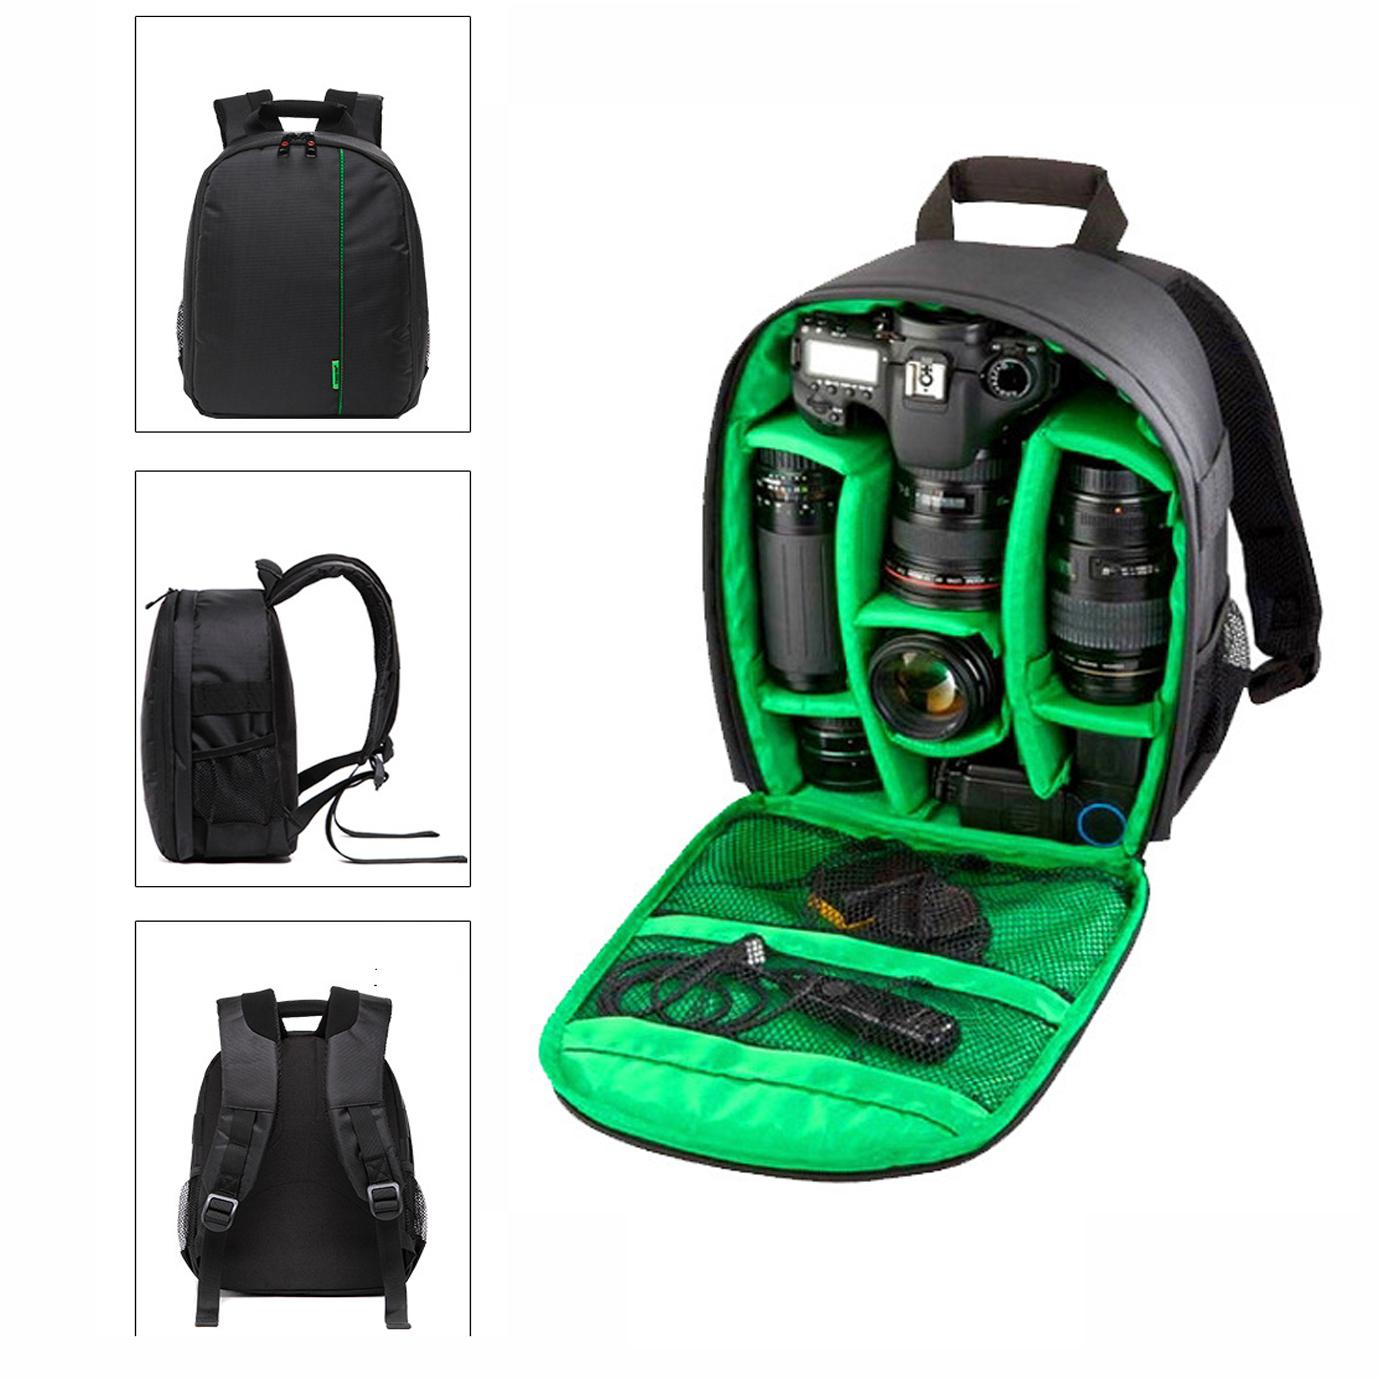 035d68bbf164 2019 2017 Digital DSLR Camera Bag Waterproof Photo Backpack Small Travel  Camera Video Bag For Canon Nikon Sony With Rain Cover From Sunny4ever